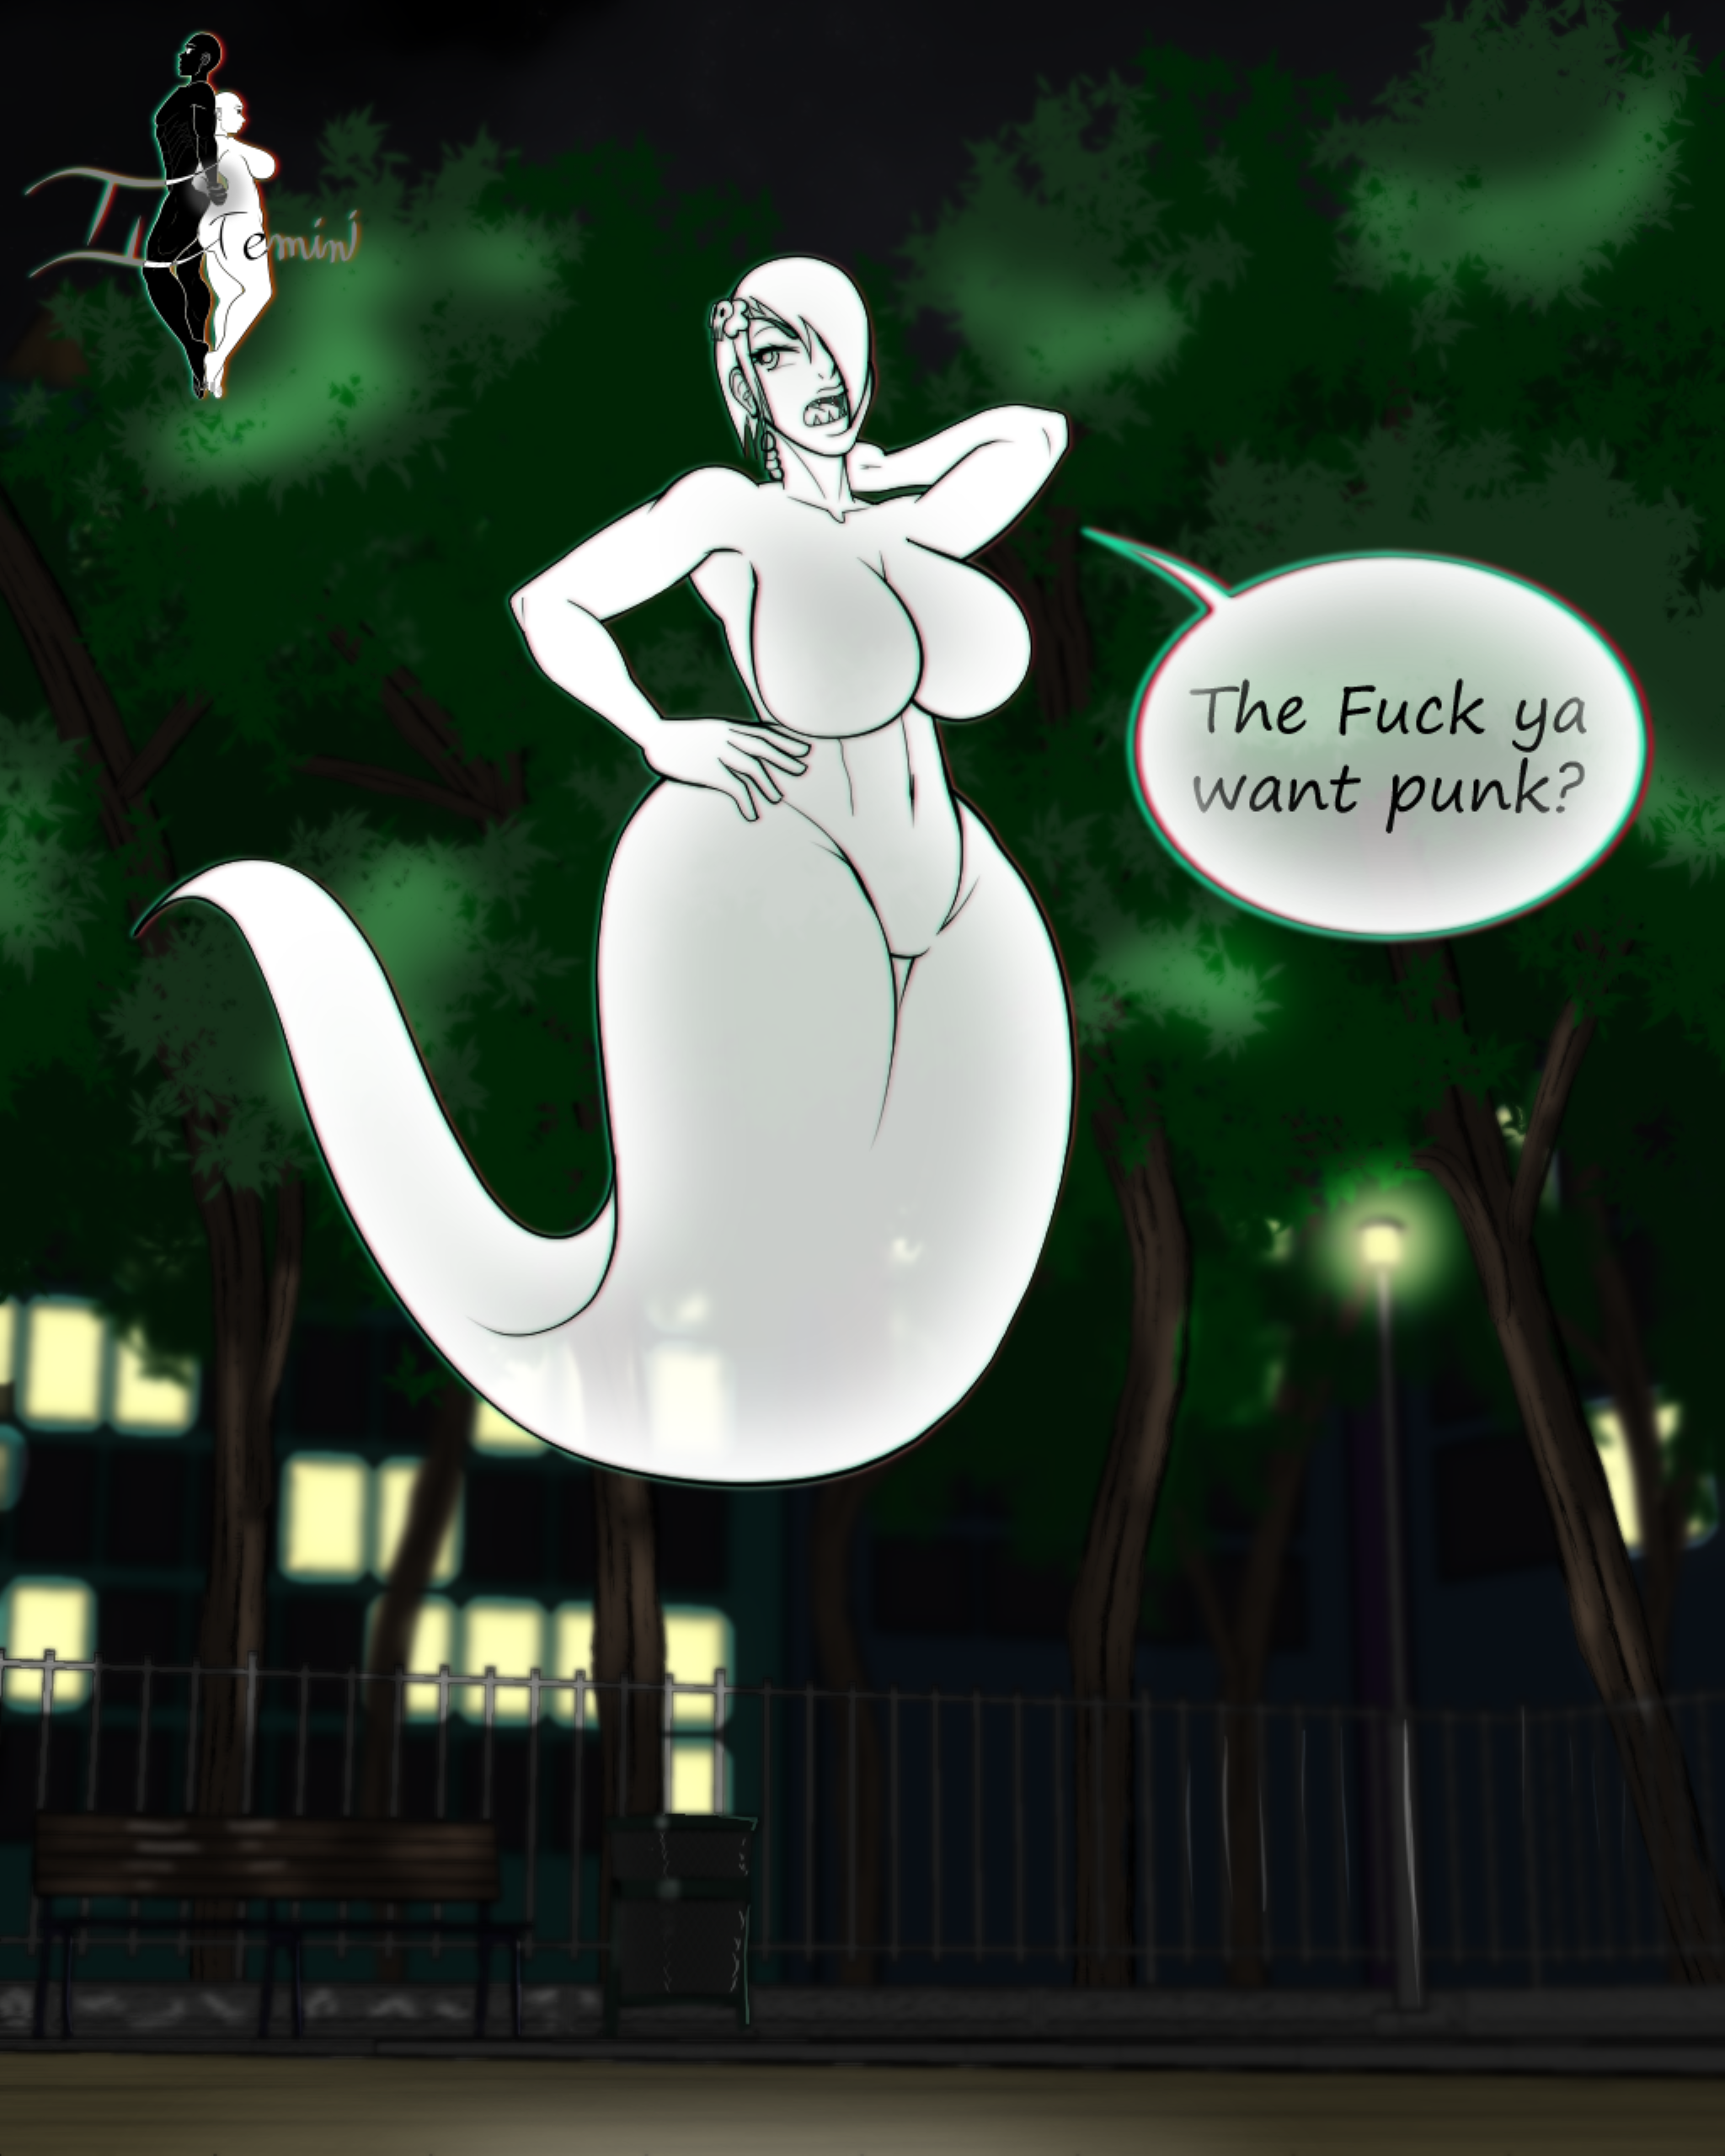 Local Park (Thicc) Ghost